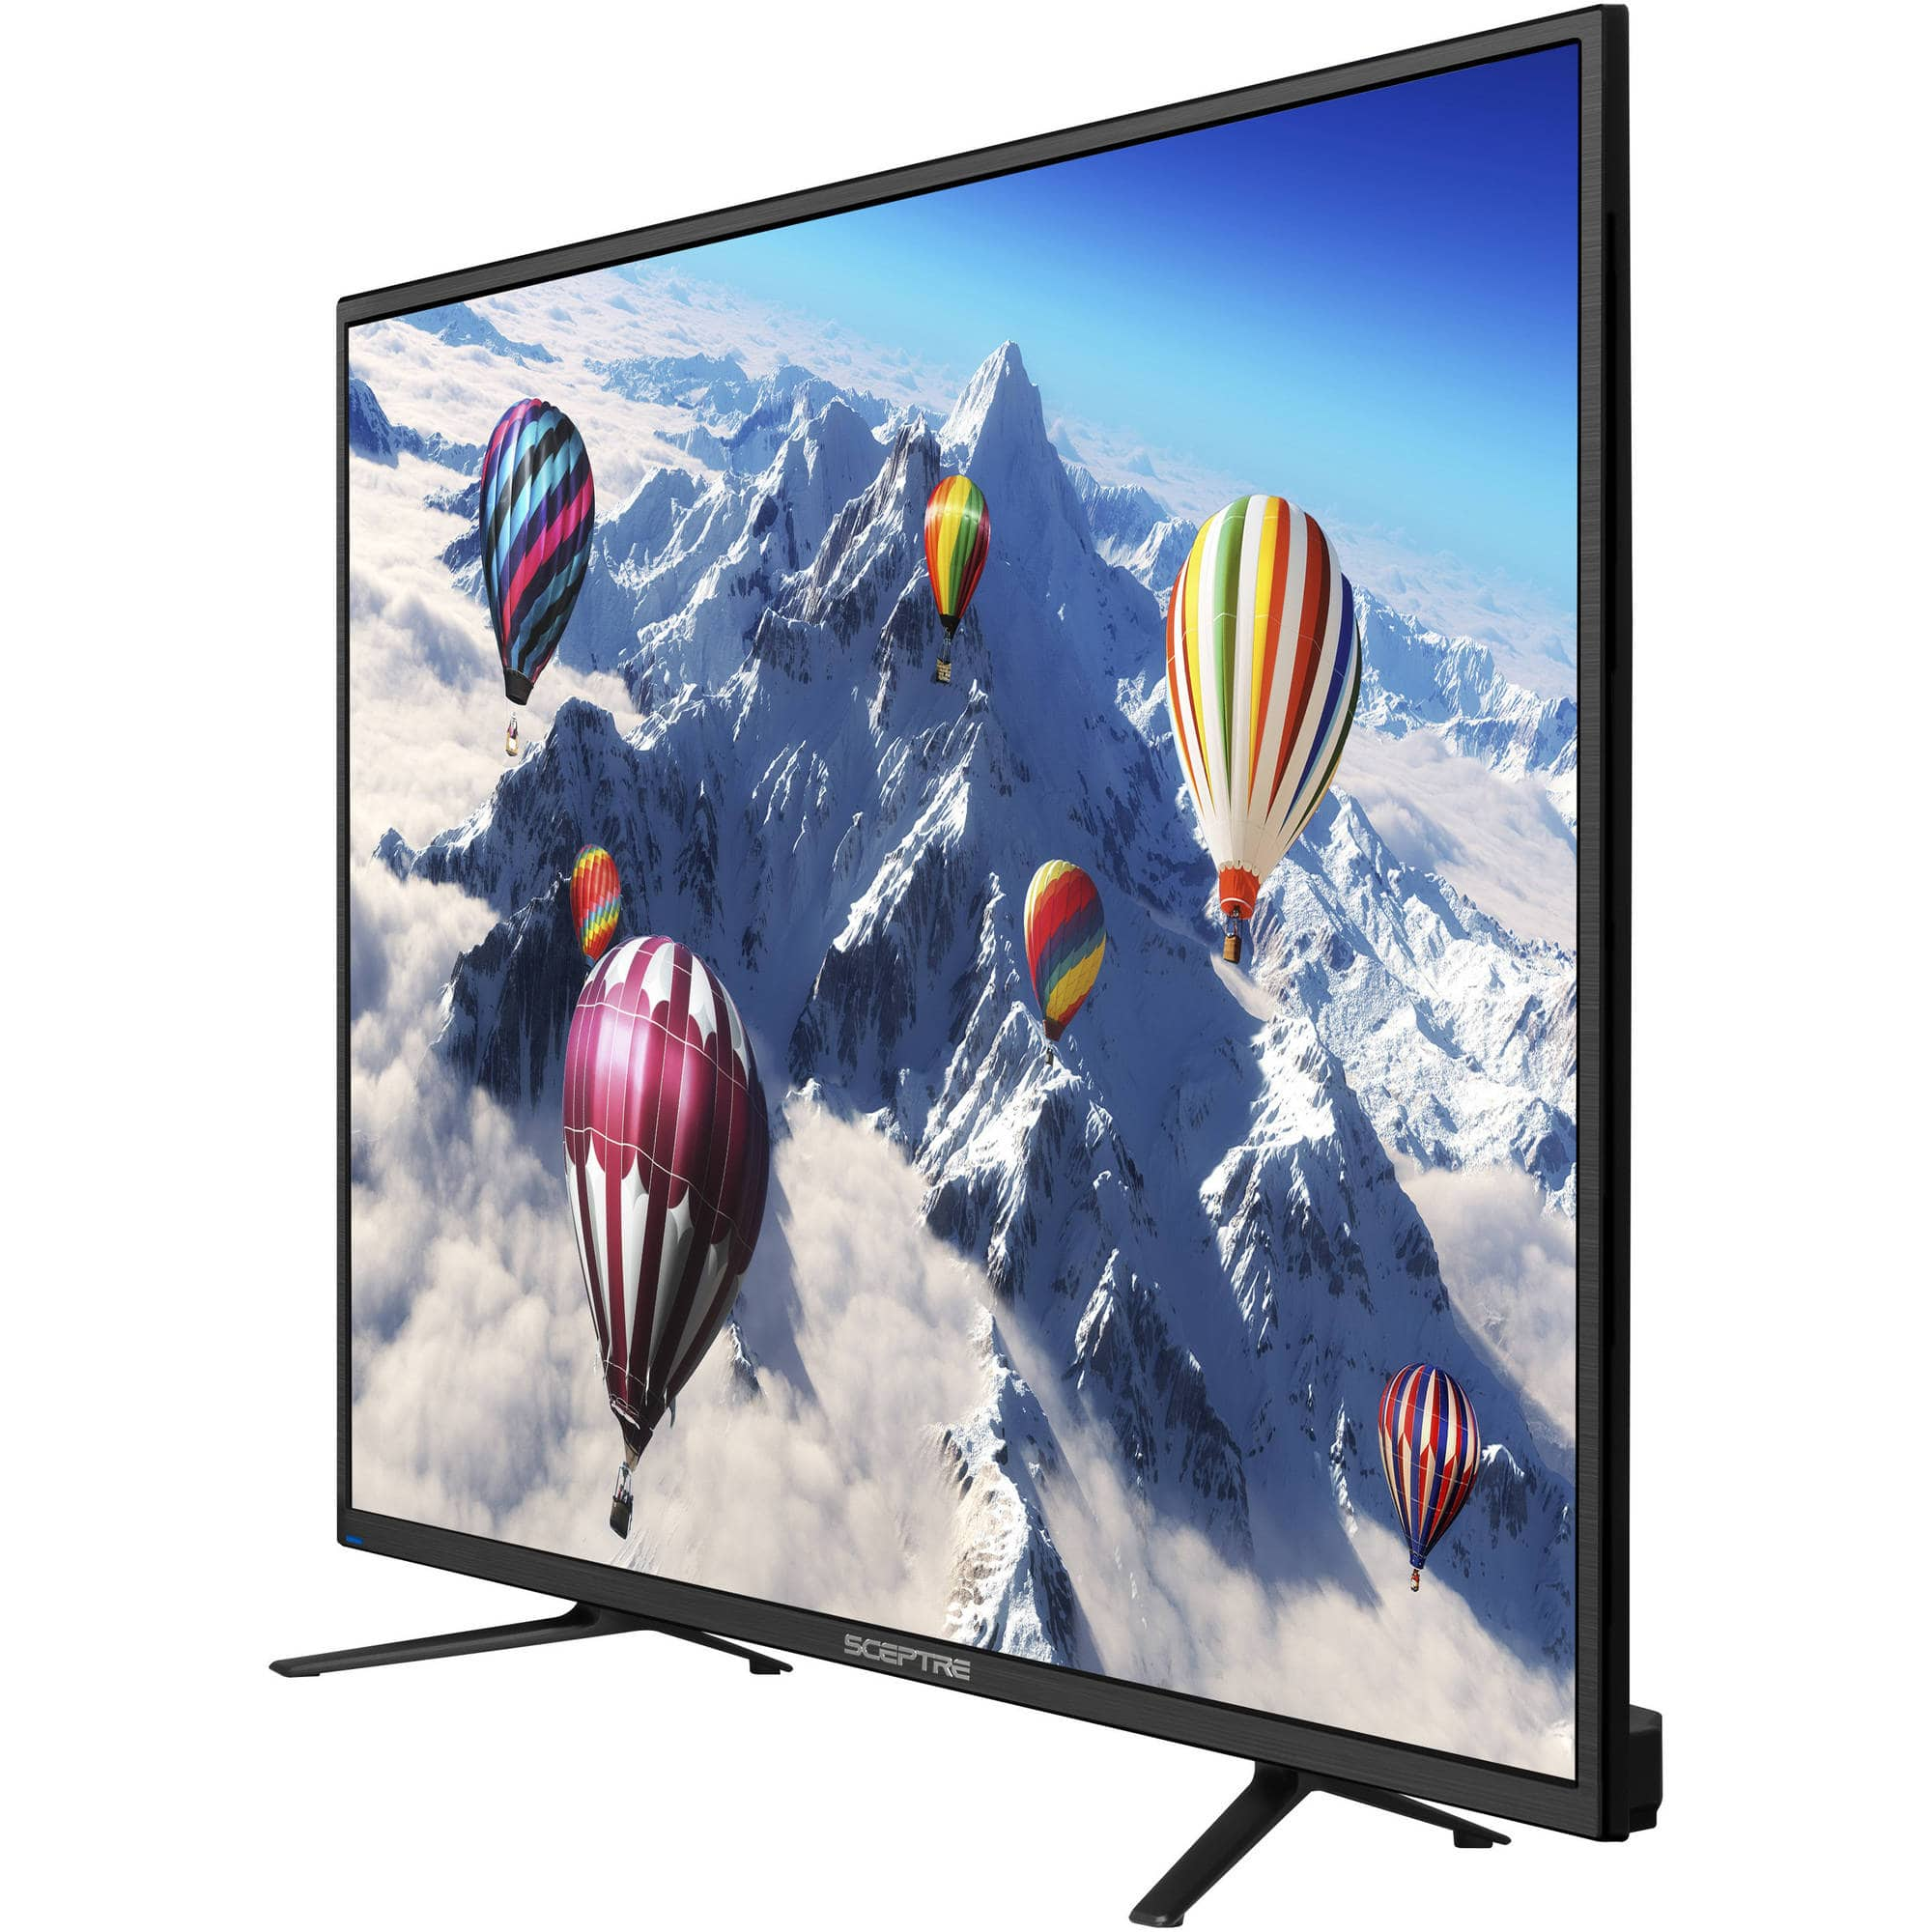 All About 4k Ledlcd Tv Resolution Amp Picture Quality Technology Sony Led Smart Kdl 48w700 Hitam